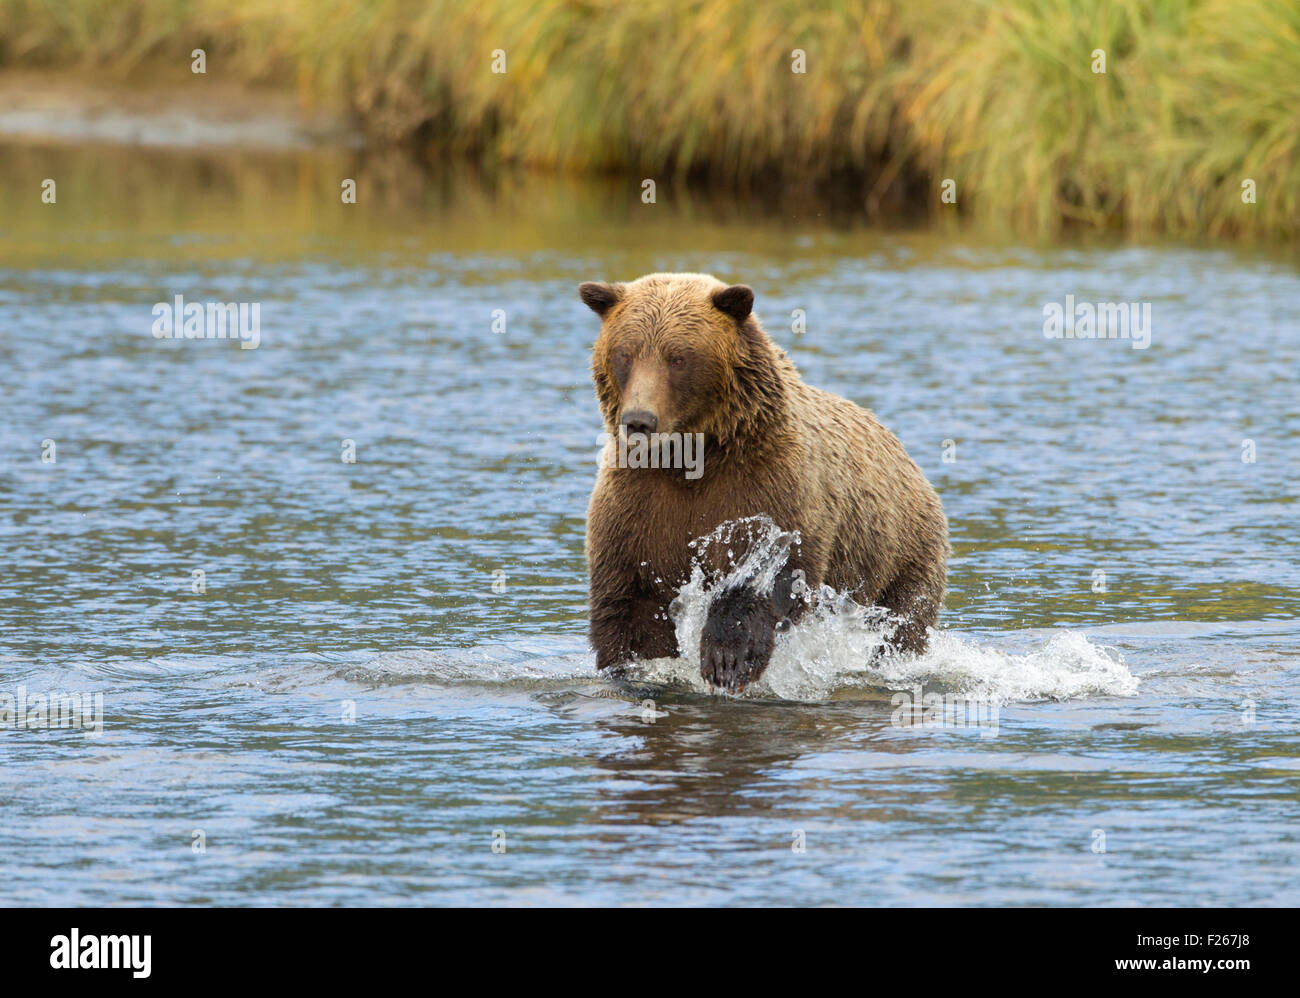 Grizzly Bear Running in Creek - Stock Image